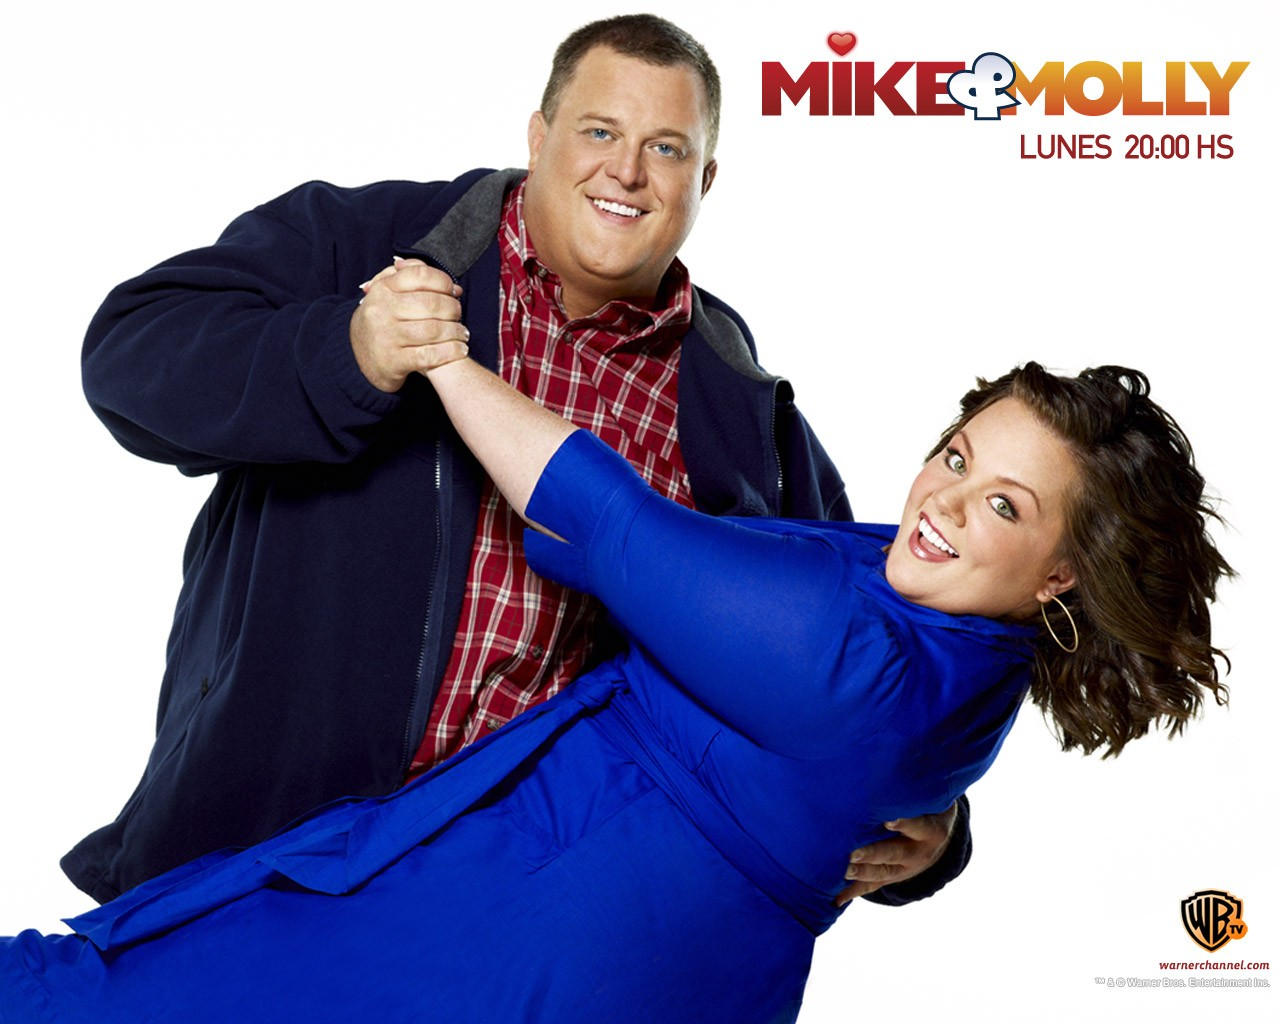 Molly Und Mike